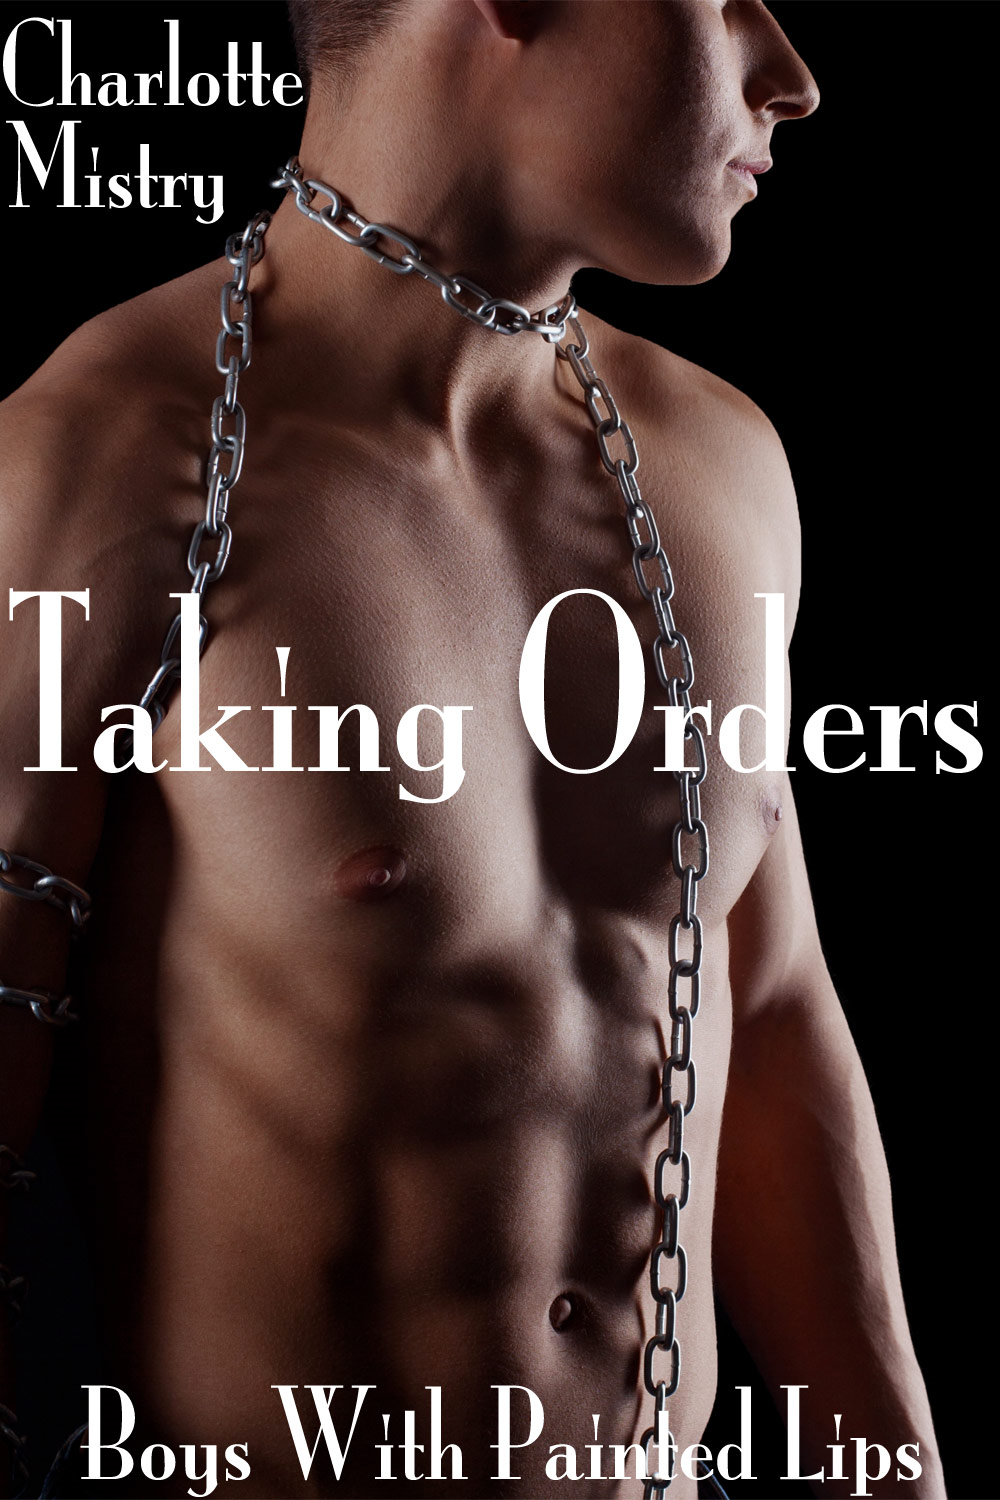 Taking Orders: Boys With Painted Lips, Part 2 (A Gay BDSM Erotic Romance)